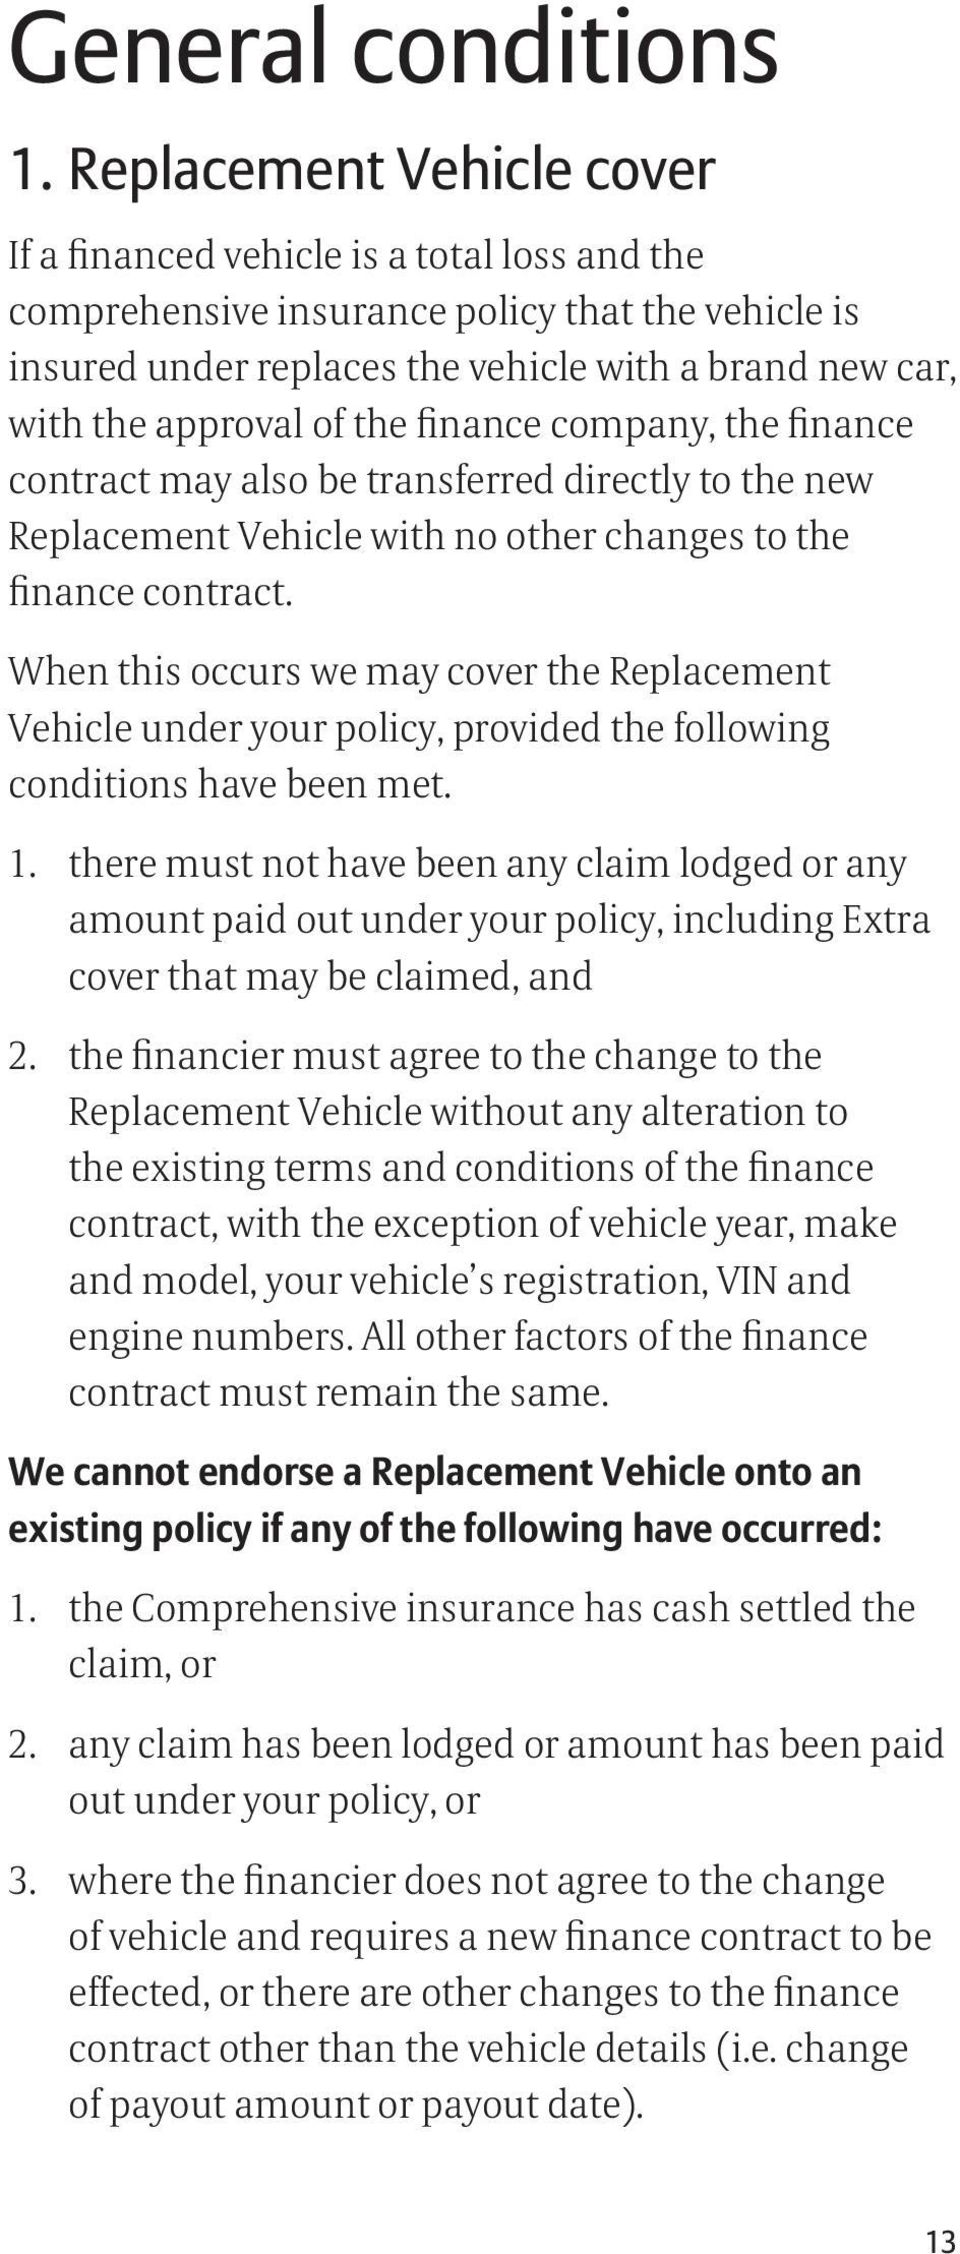 of the finance company, the finance contract may also be transferred directly to the new Replacement Vehicle with no other changes to the finance contract.